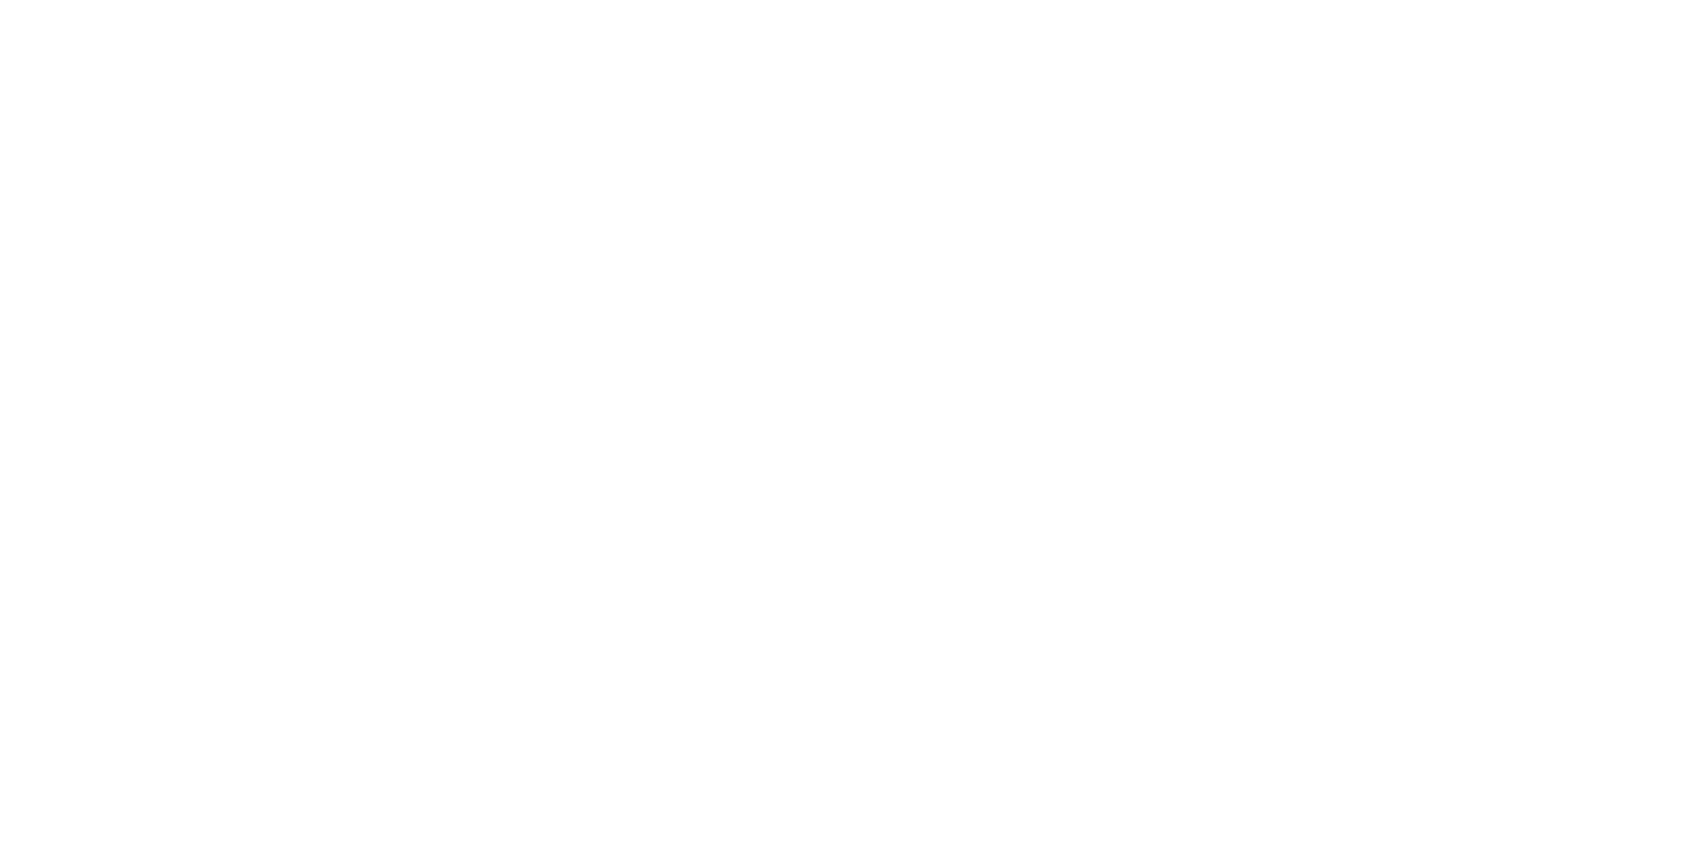 review-gift.png